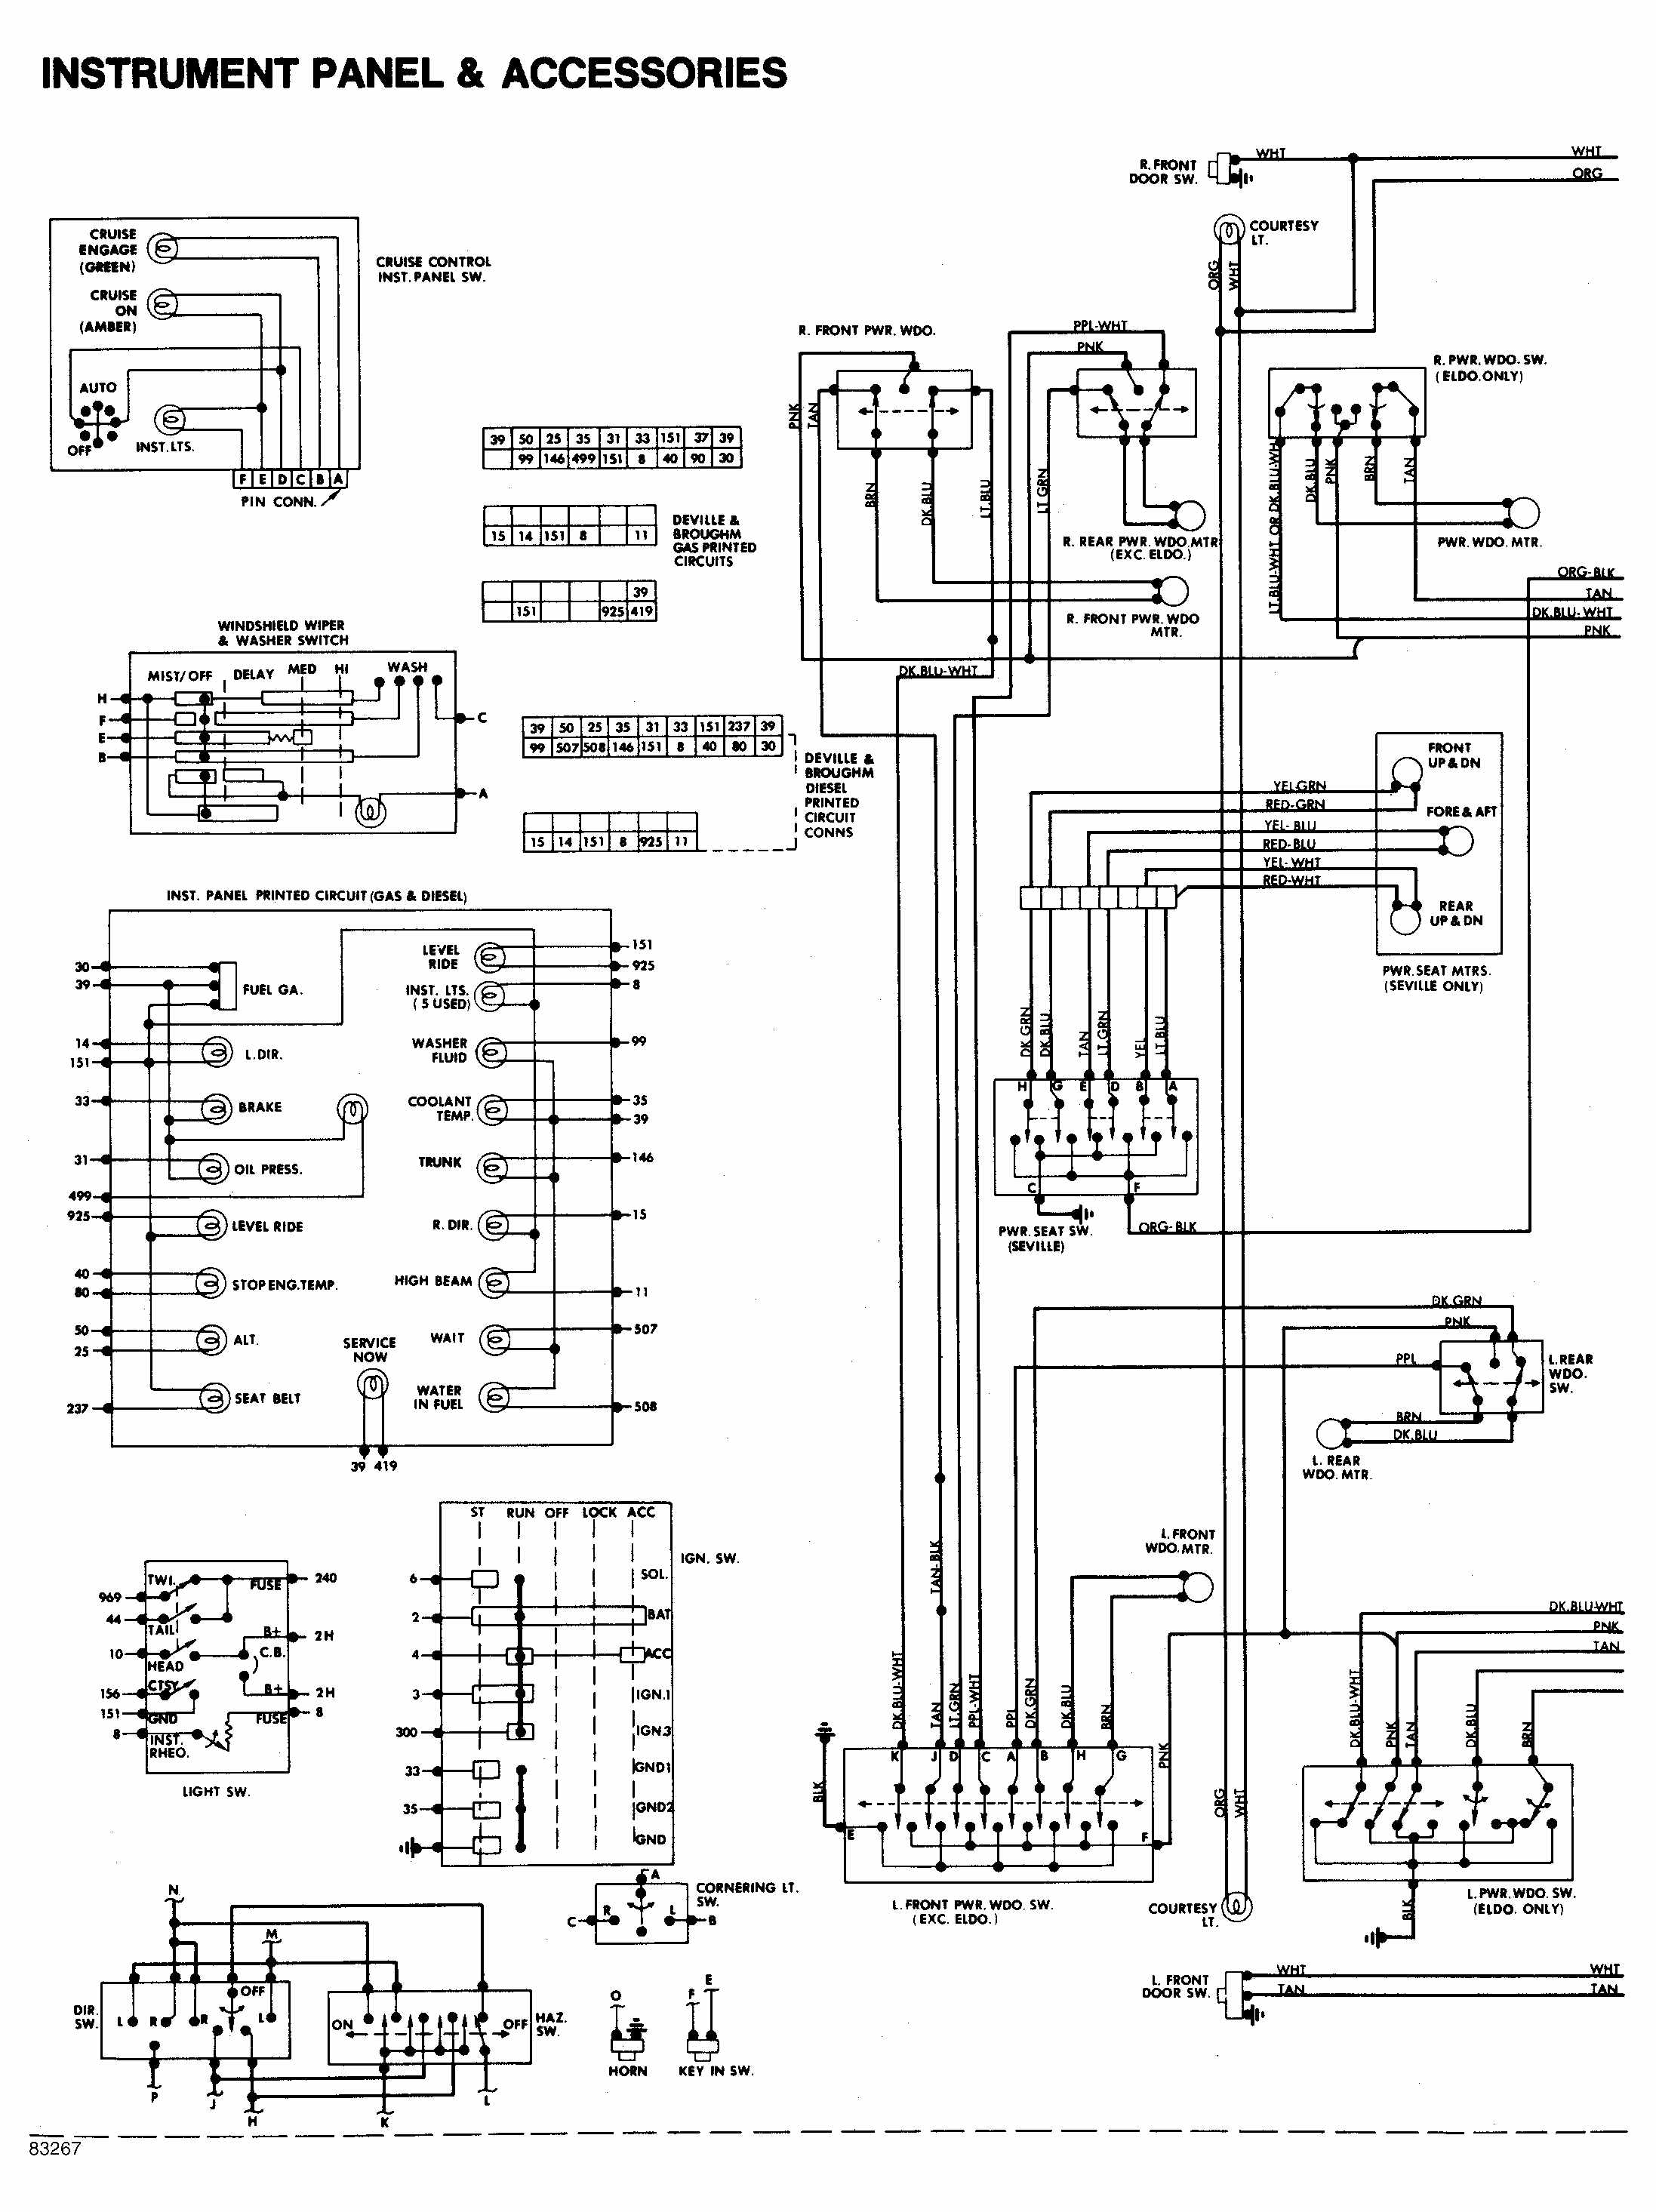 2000 Cadillac Deville Radio Wiring Diagram - 2001 Cadillac Deville Alarm Wiring Diagram Wire Center U2022 Rh Inkshirts Co Wiring Schematics for A 2000 Cadillac Escalade Wiring Harness 2003 Cadillac Cts 13l